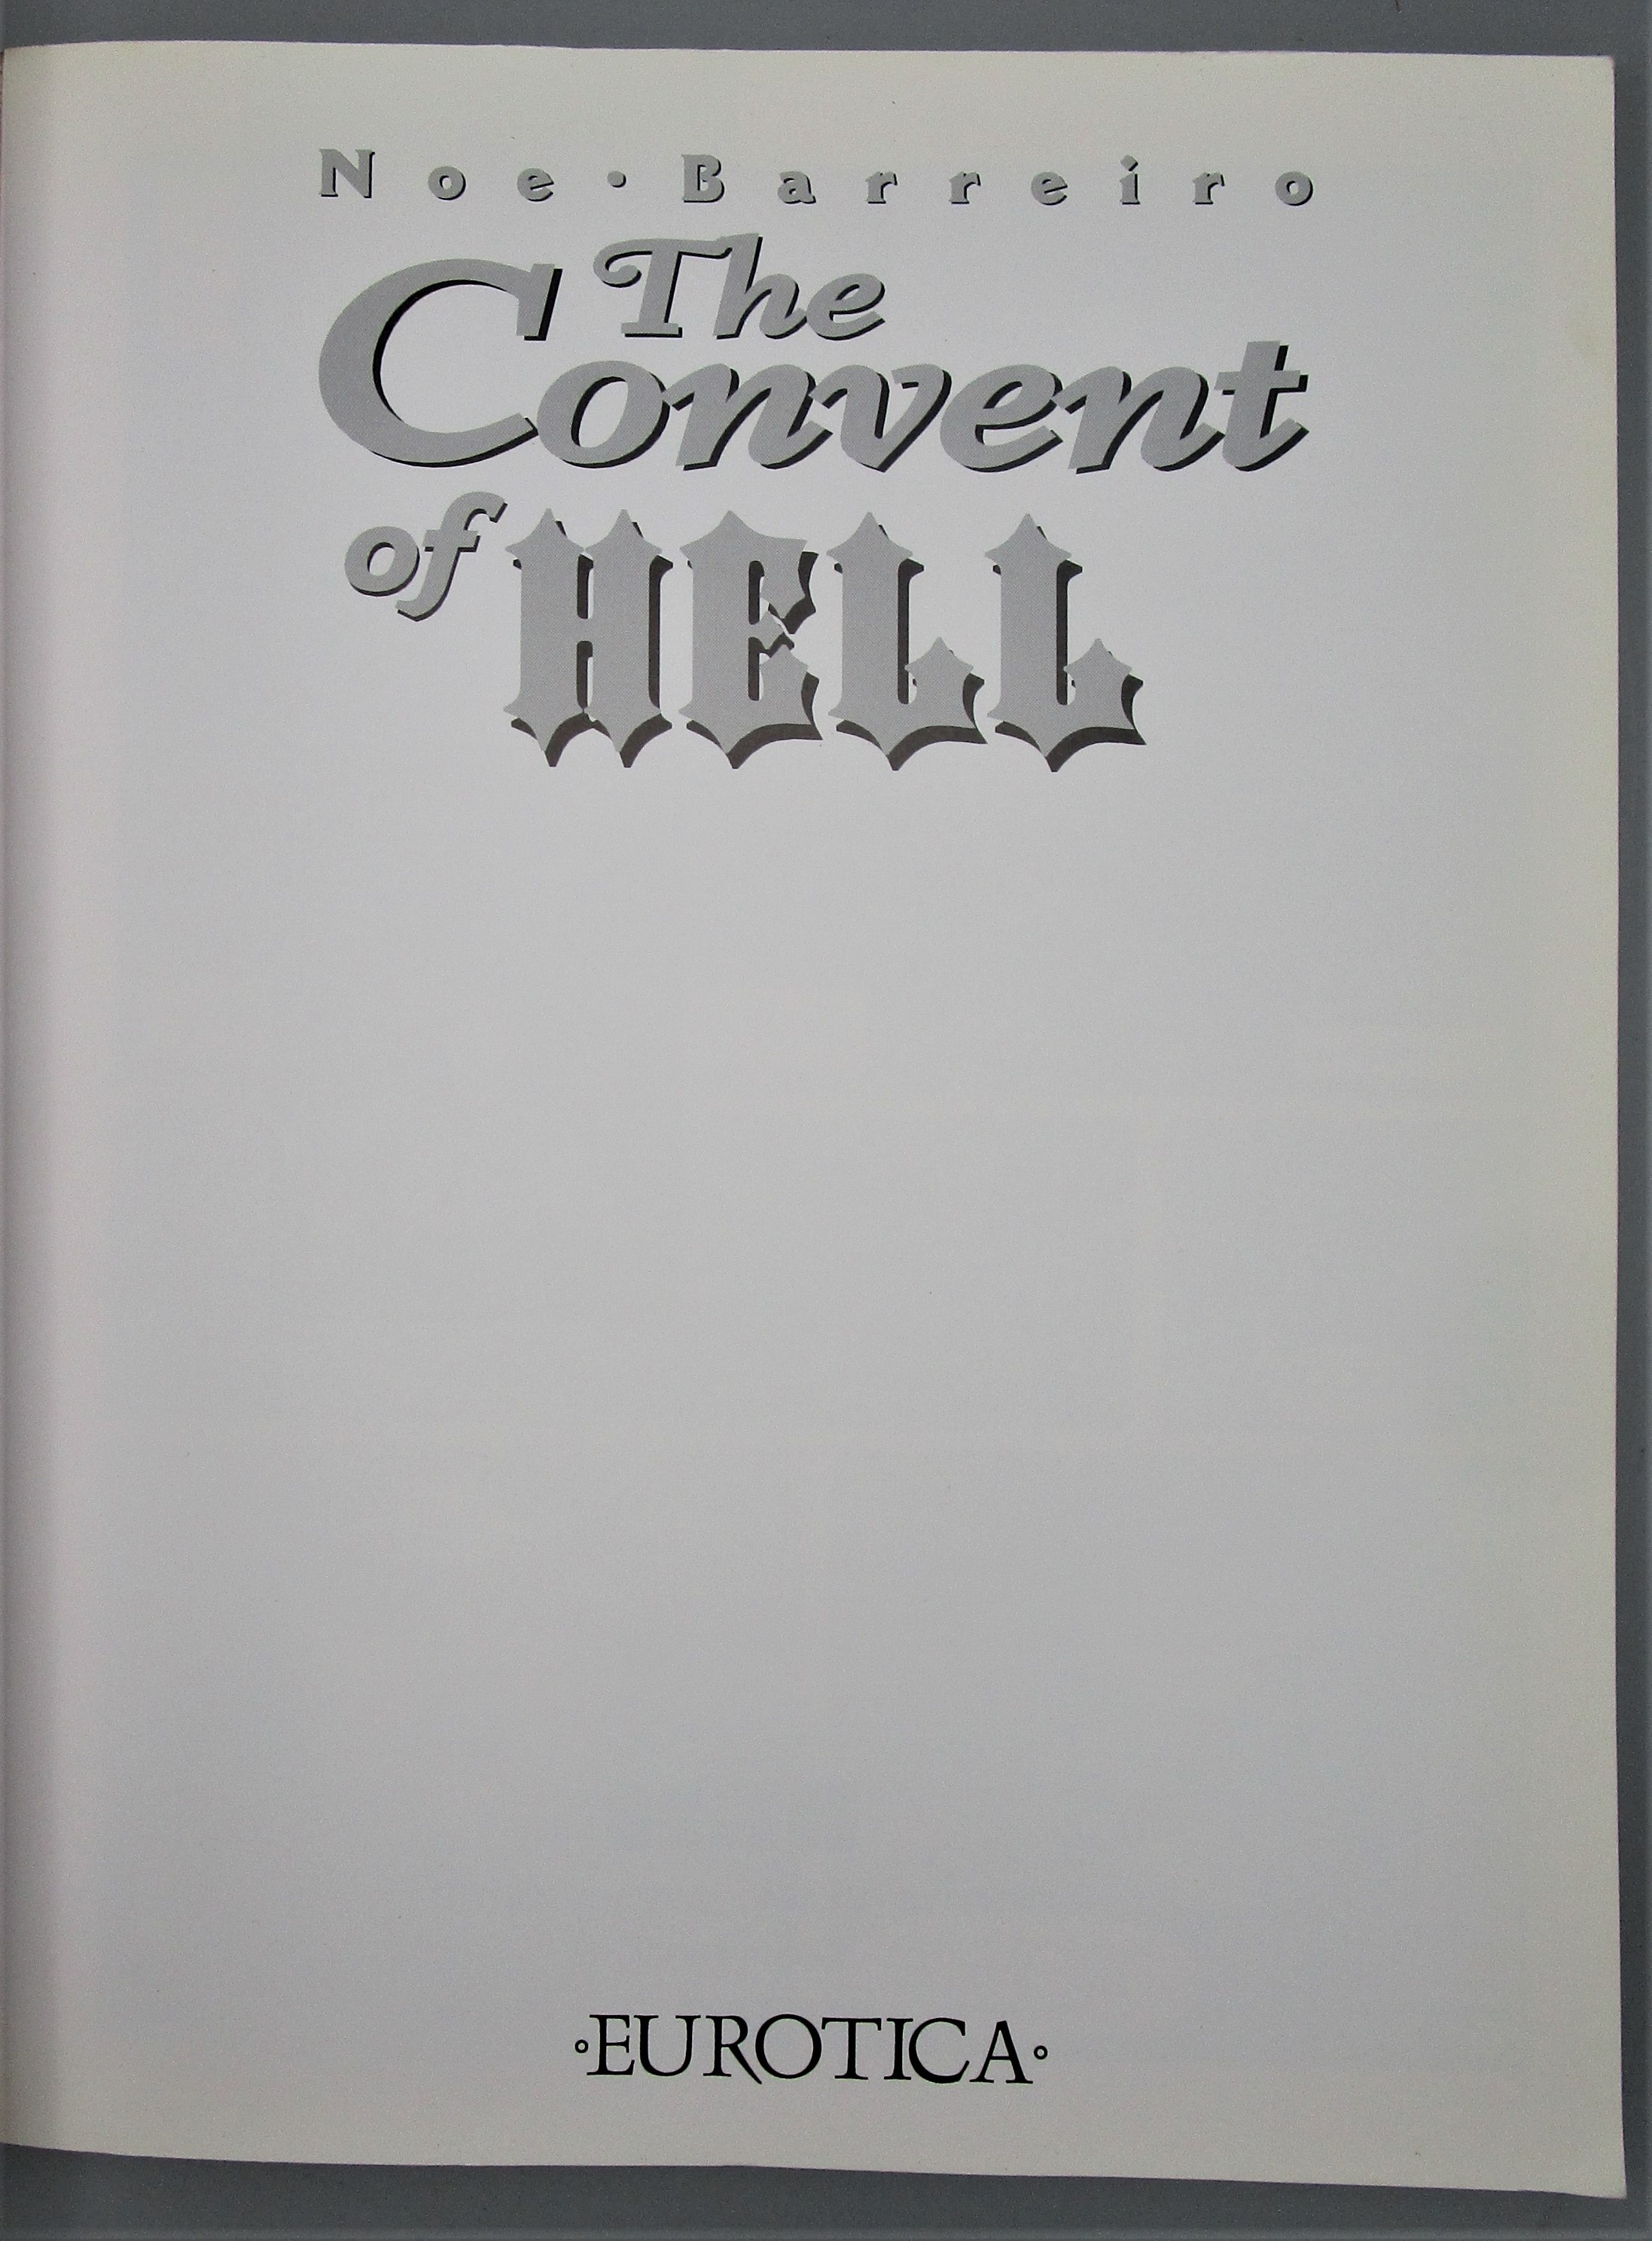 THE CONVENT OF HELL, by Noe Barreiro - 1997